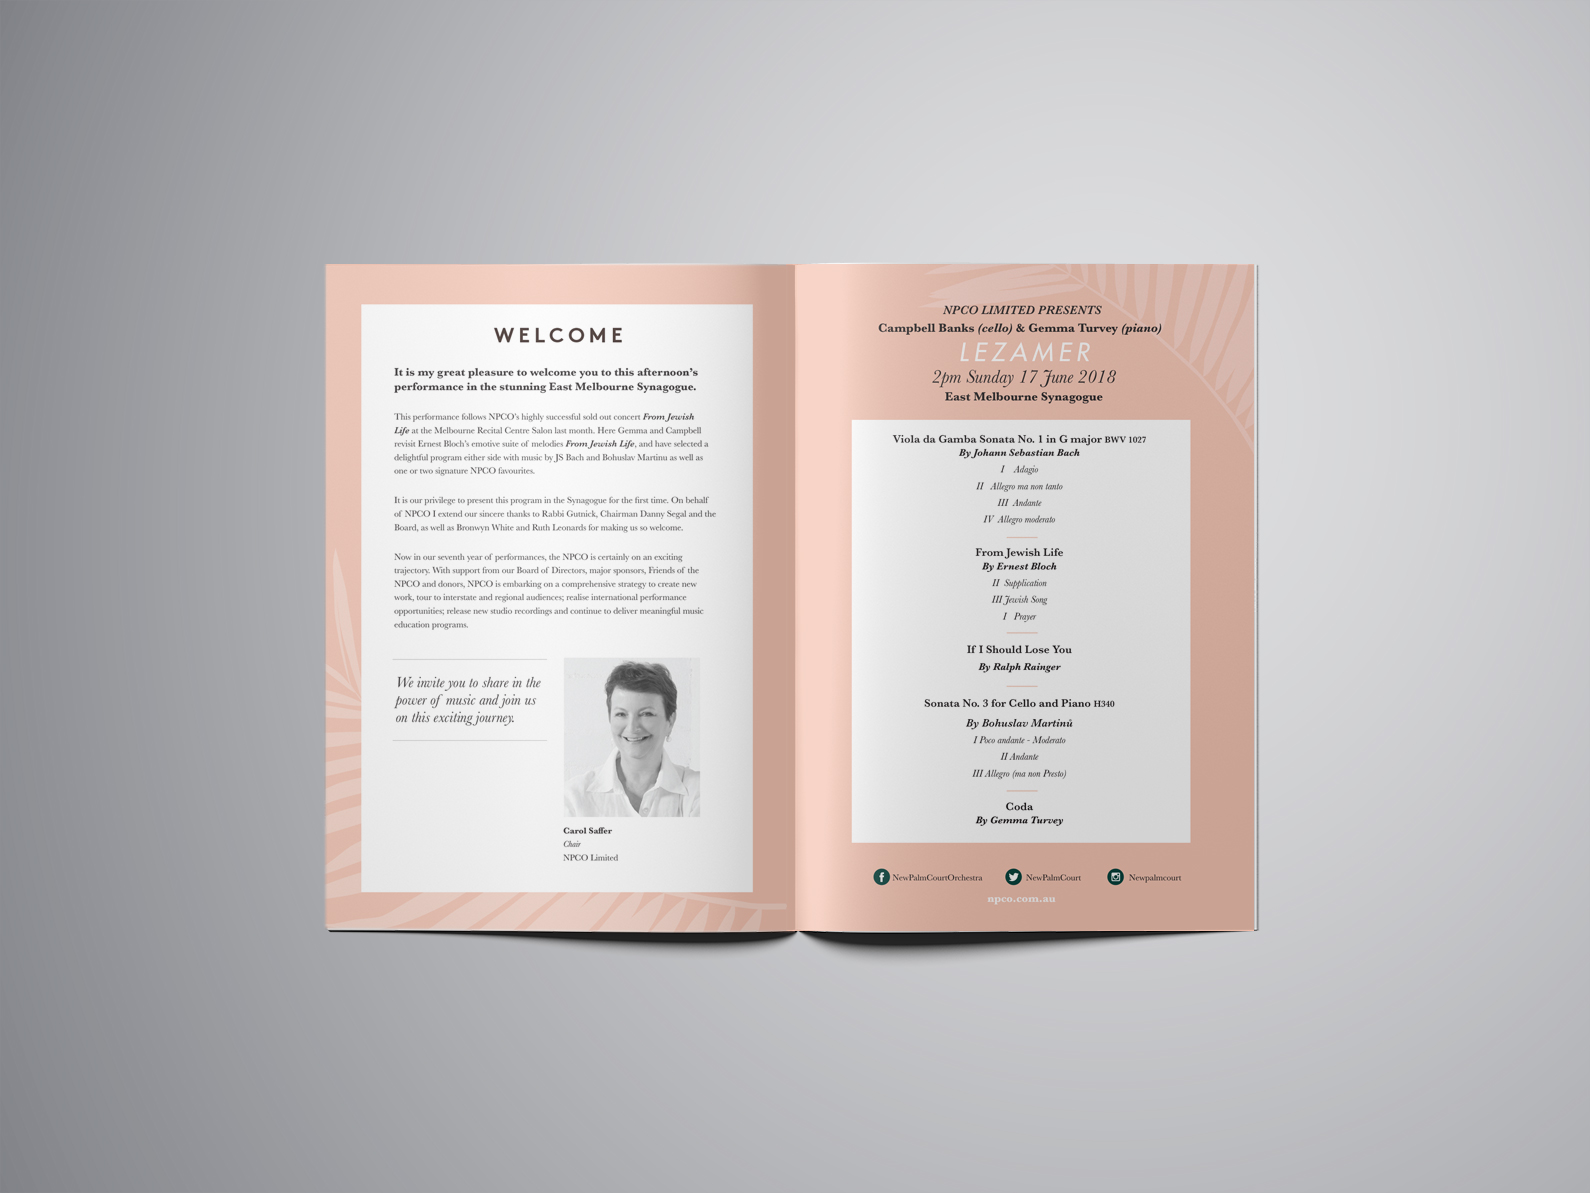 Studio-Mimi-Moon-New-Palm-Court-Orchestra-Brand-Identity-and-collateral-Concert-Booklet-2